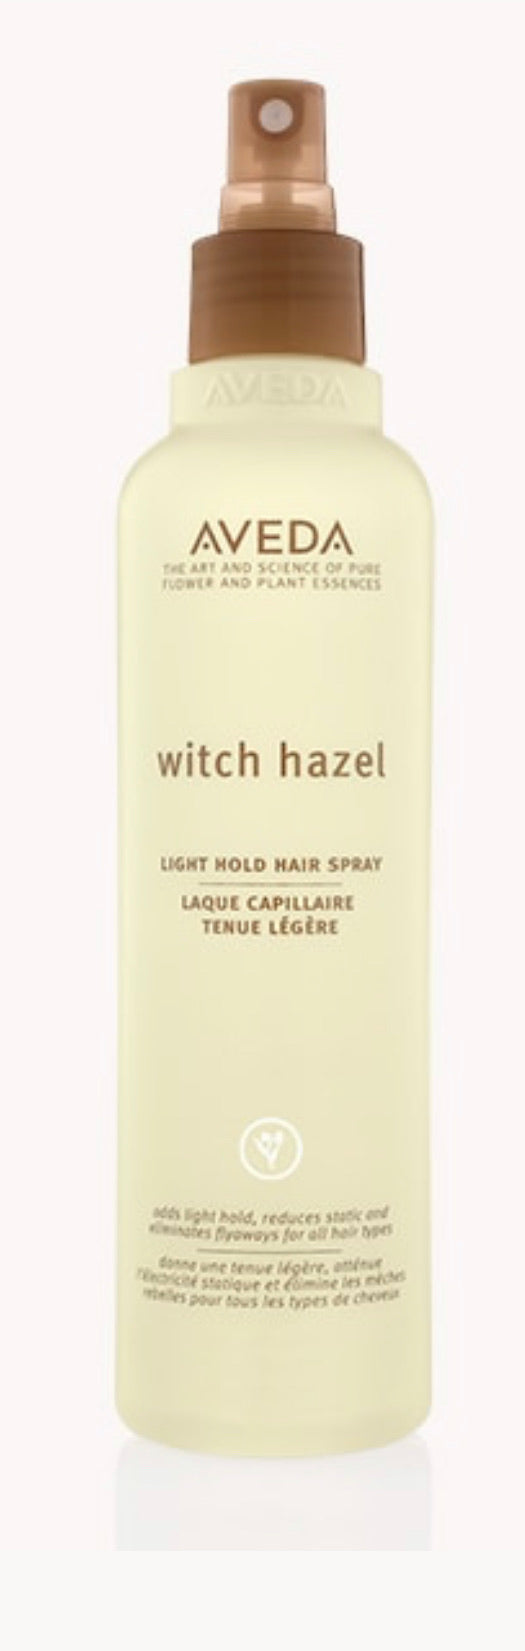 AVEDA Witch Hazel